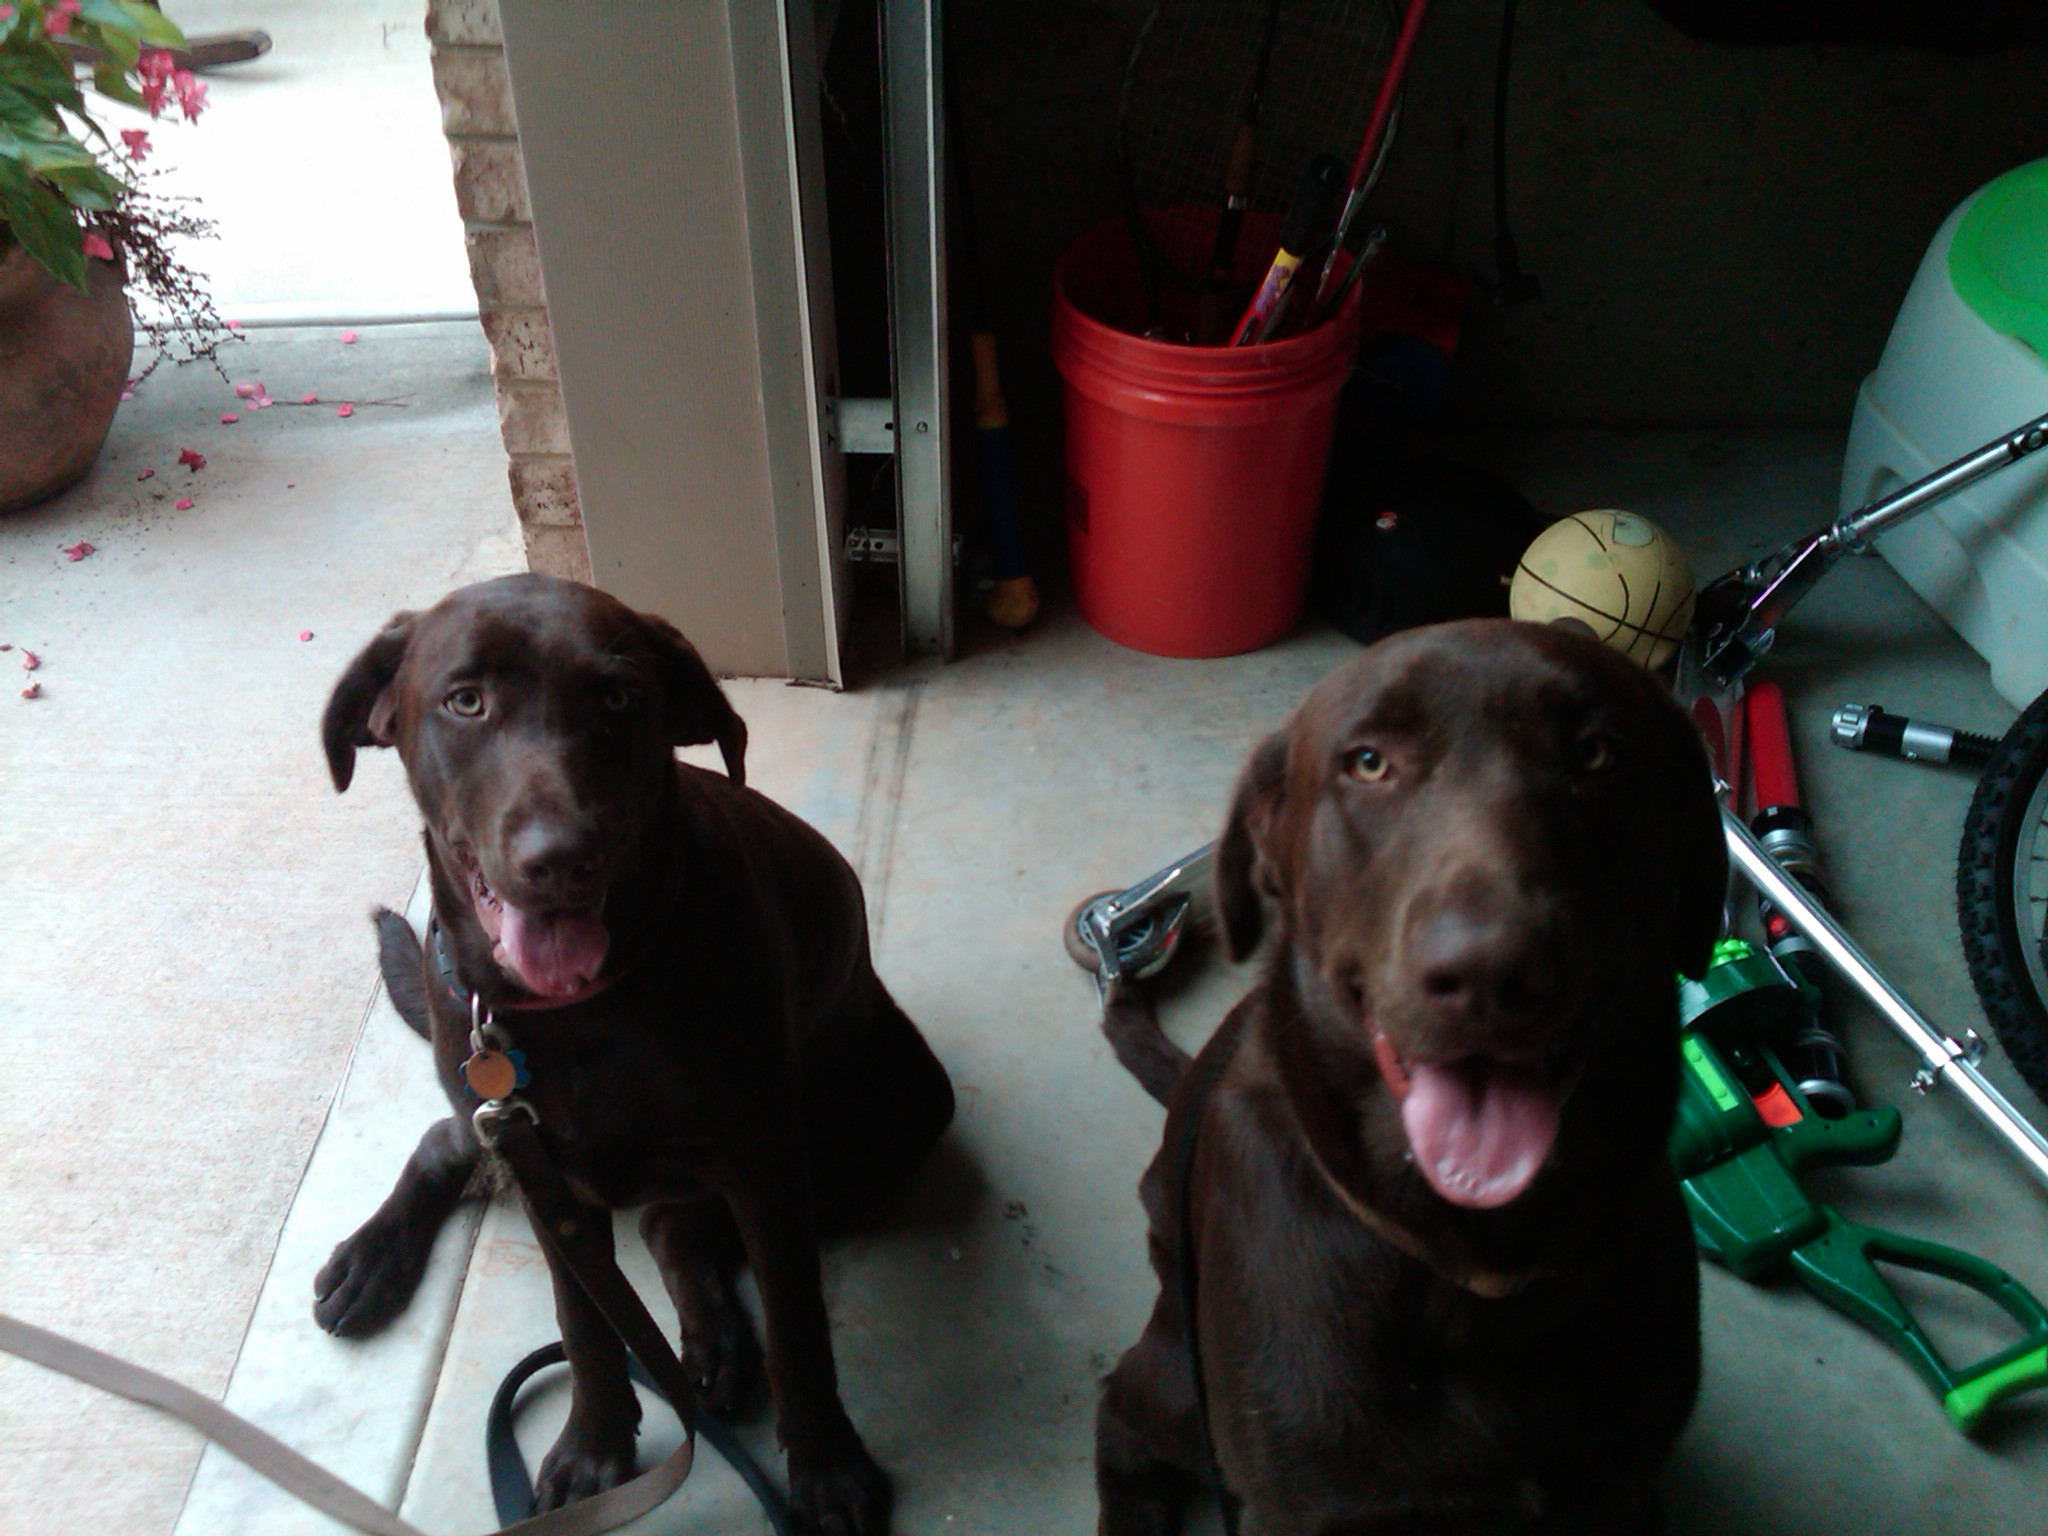 Pet Sitter and Dog Walker for these two Chocolate Lab pups!